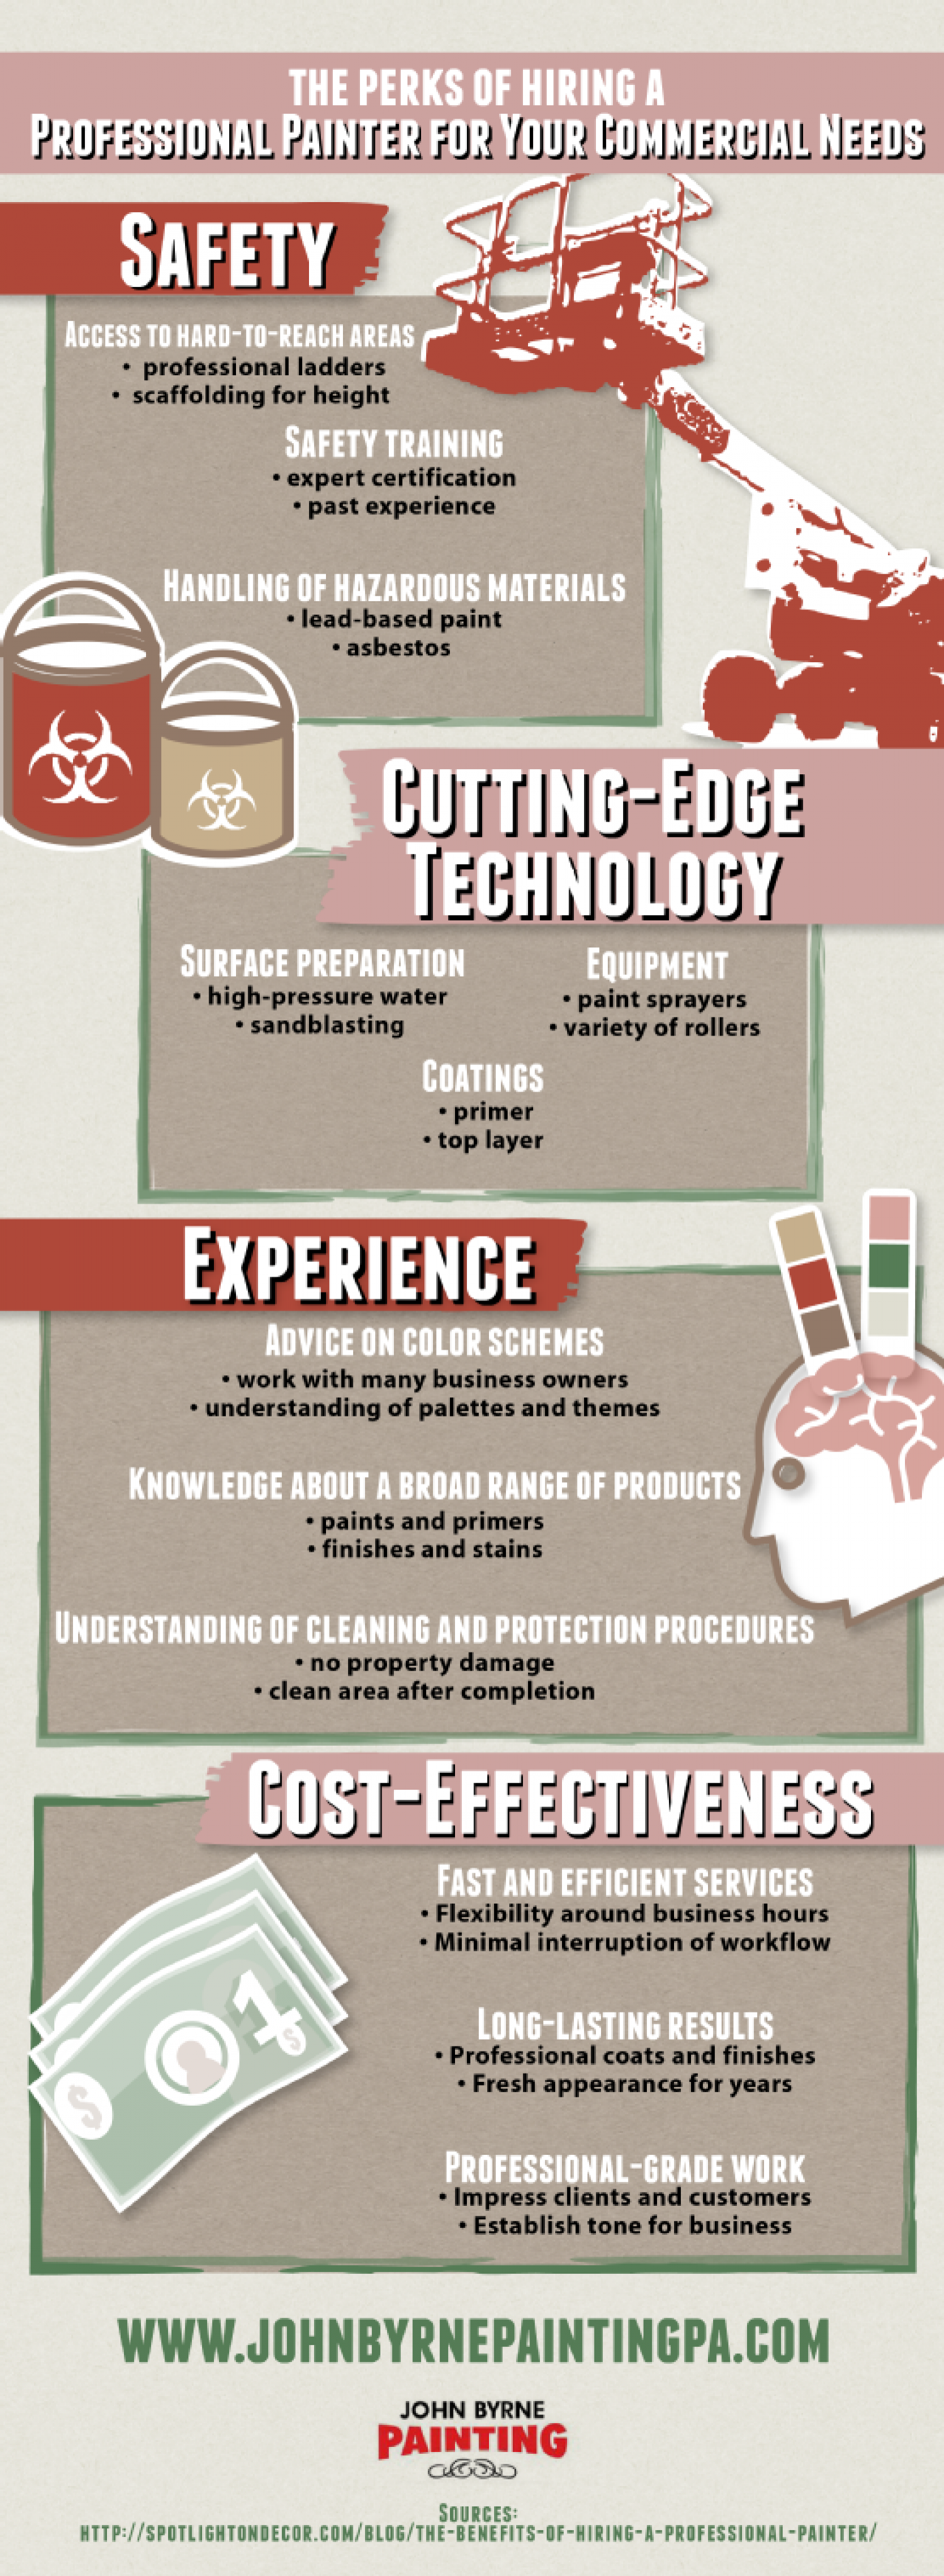 The Perks of Hiring a Professional Painter for Your Commercial Needs Infographic